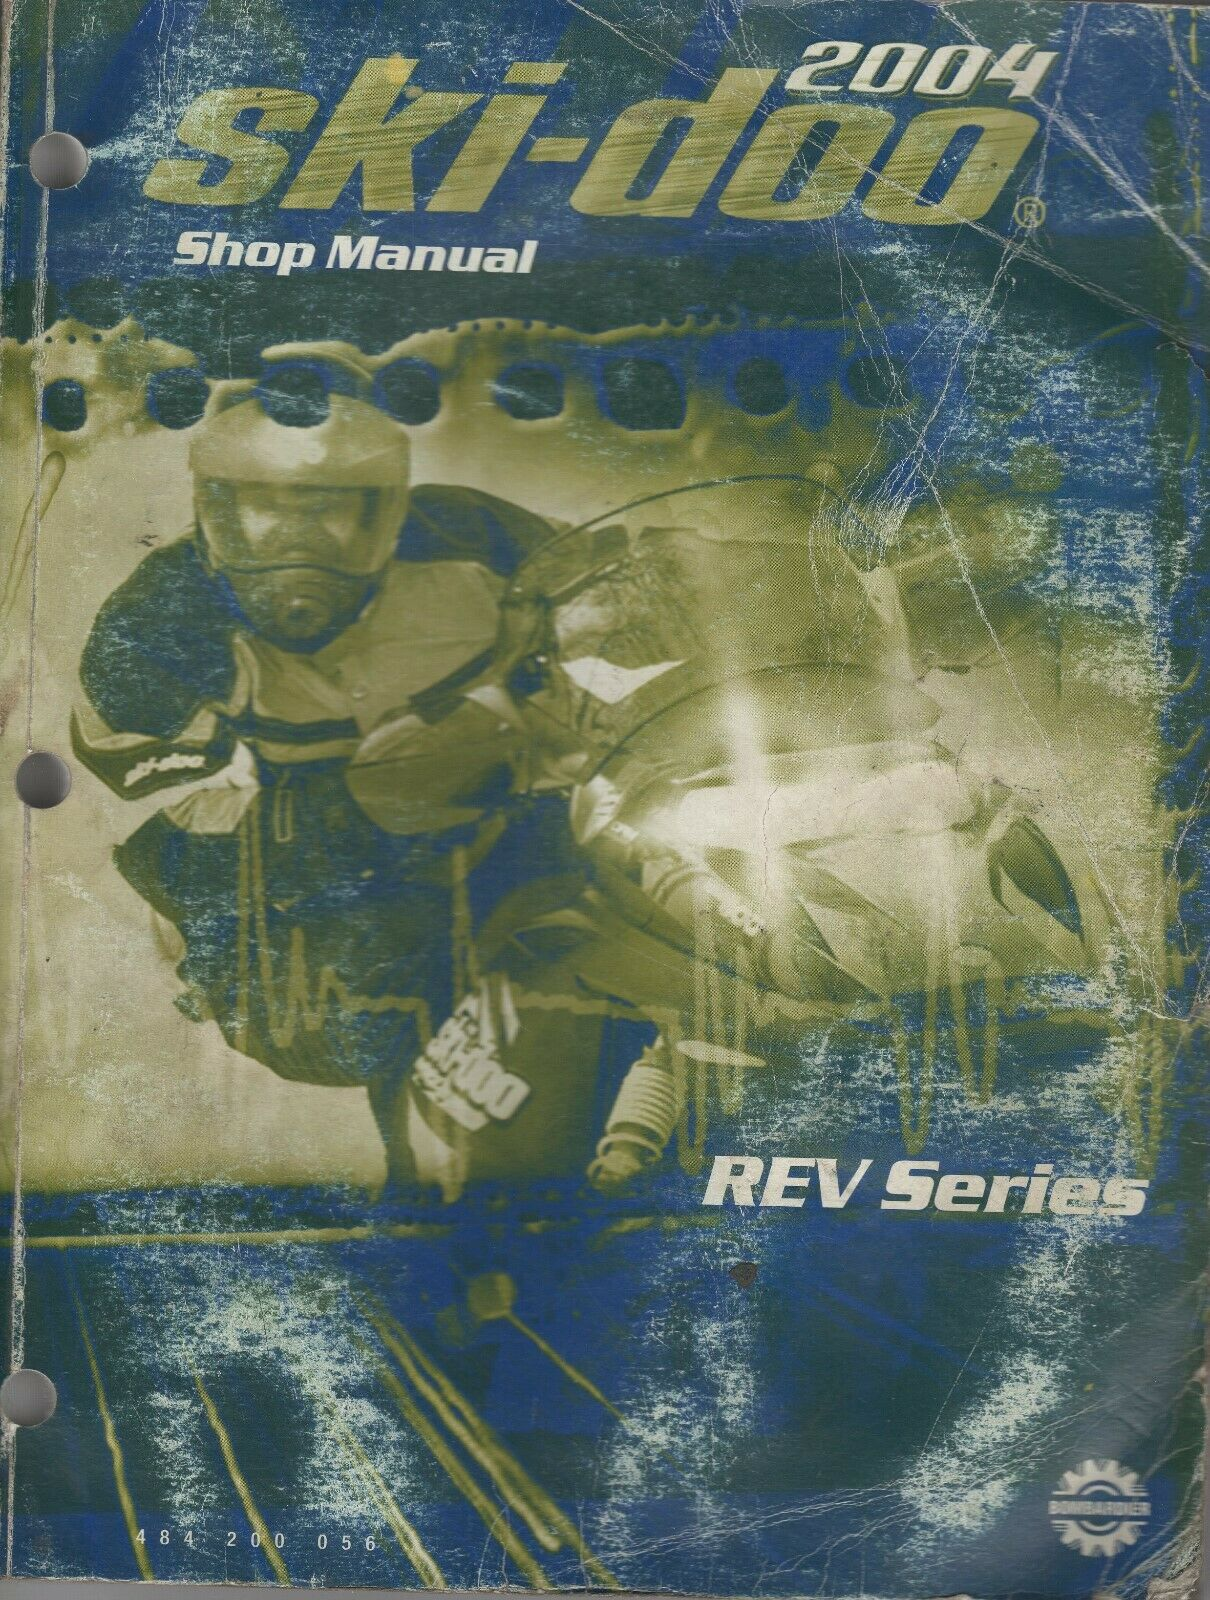 2004 SKI-DOO SNOWMOBILE REV SERIES SHOP  MANUAL 484 200 056 (615)  for sale